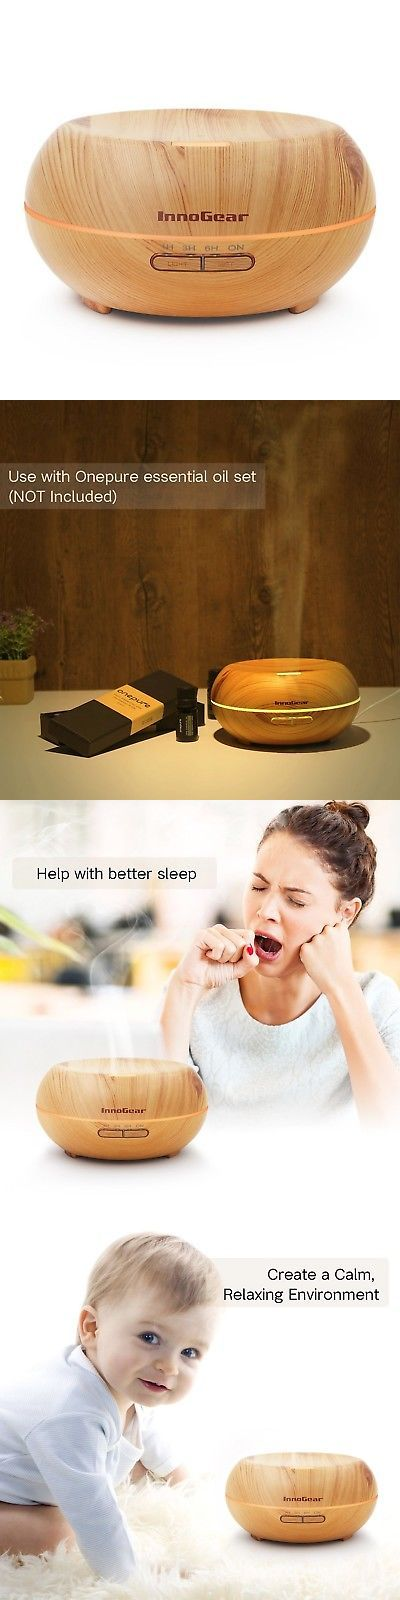 Essential Oils and Diffusers 20553: Innogear Aromatherapy Essential Oil Diffuser Ultrasonic Cool Mist Diffusers W... -> BUY IT NOW ONLY: $30.86 on eBay!